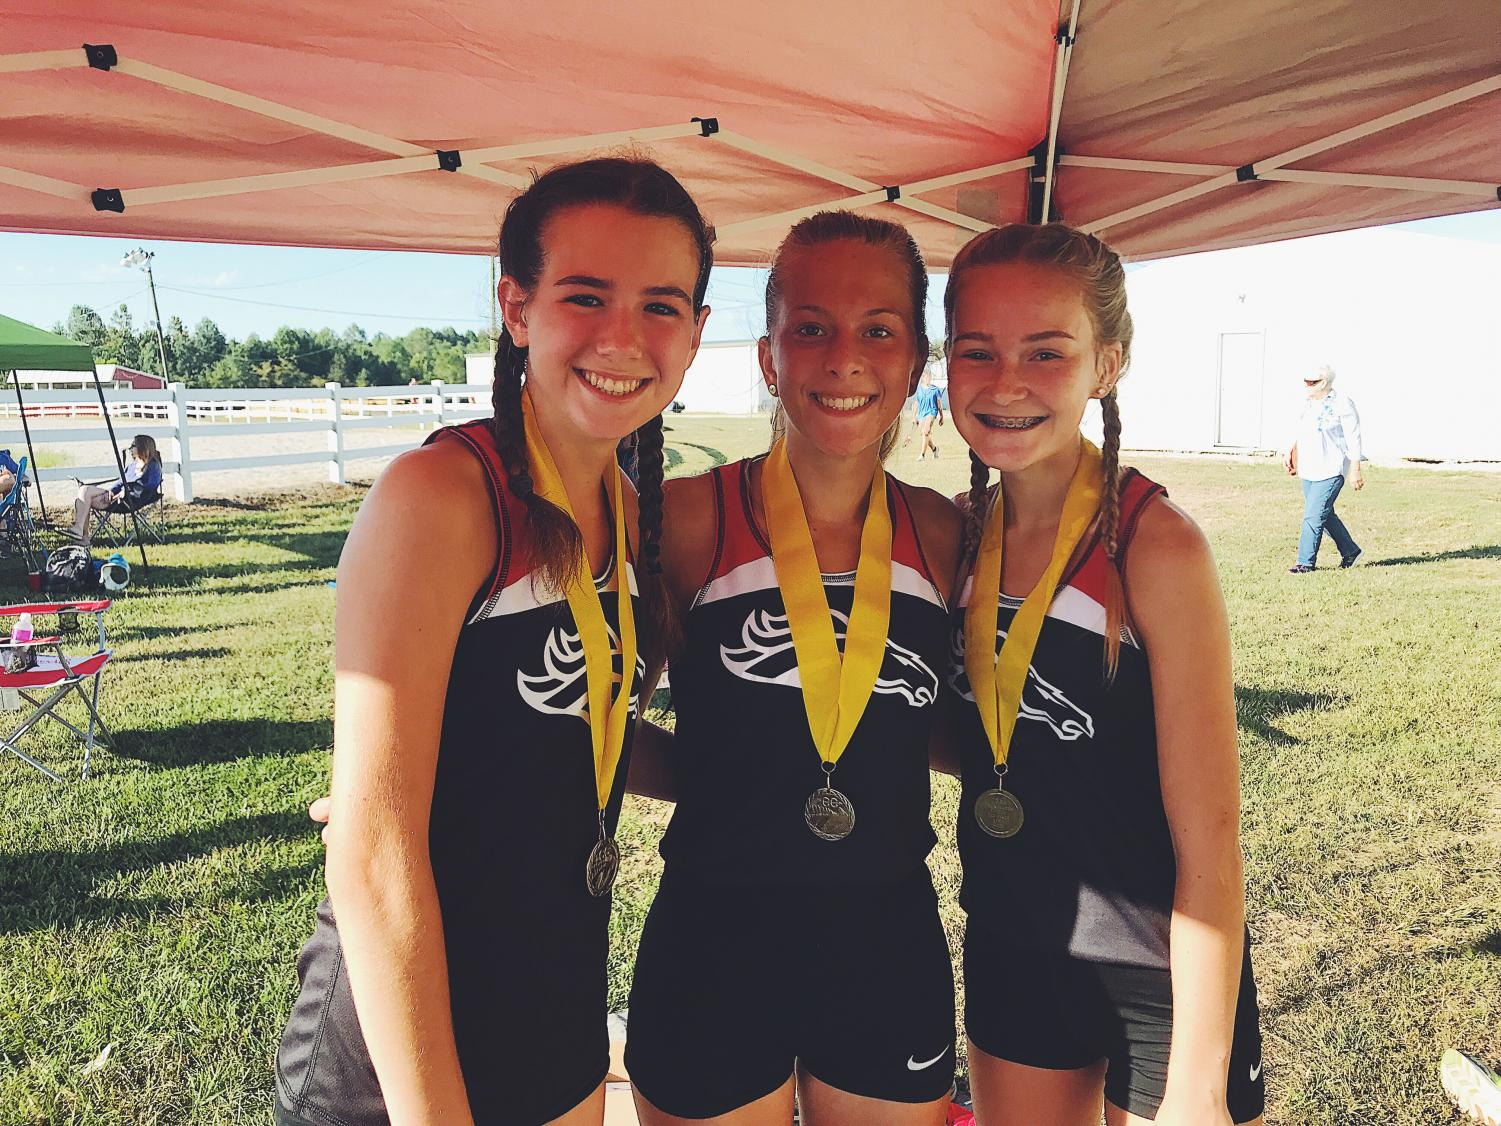 Sophomore Mia Maguire (left), junior Emily Tinelli (middle) and freshman Raelee Hawkins (right) all excelled in their meet Sept. 14. All three girls placed in the top 10 out of 69. Coach Lenny Raley calls them the